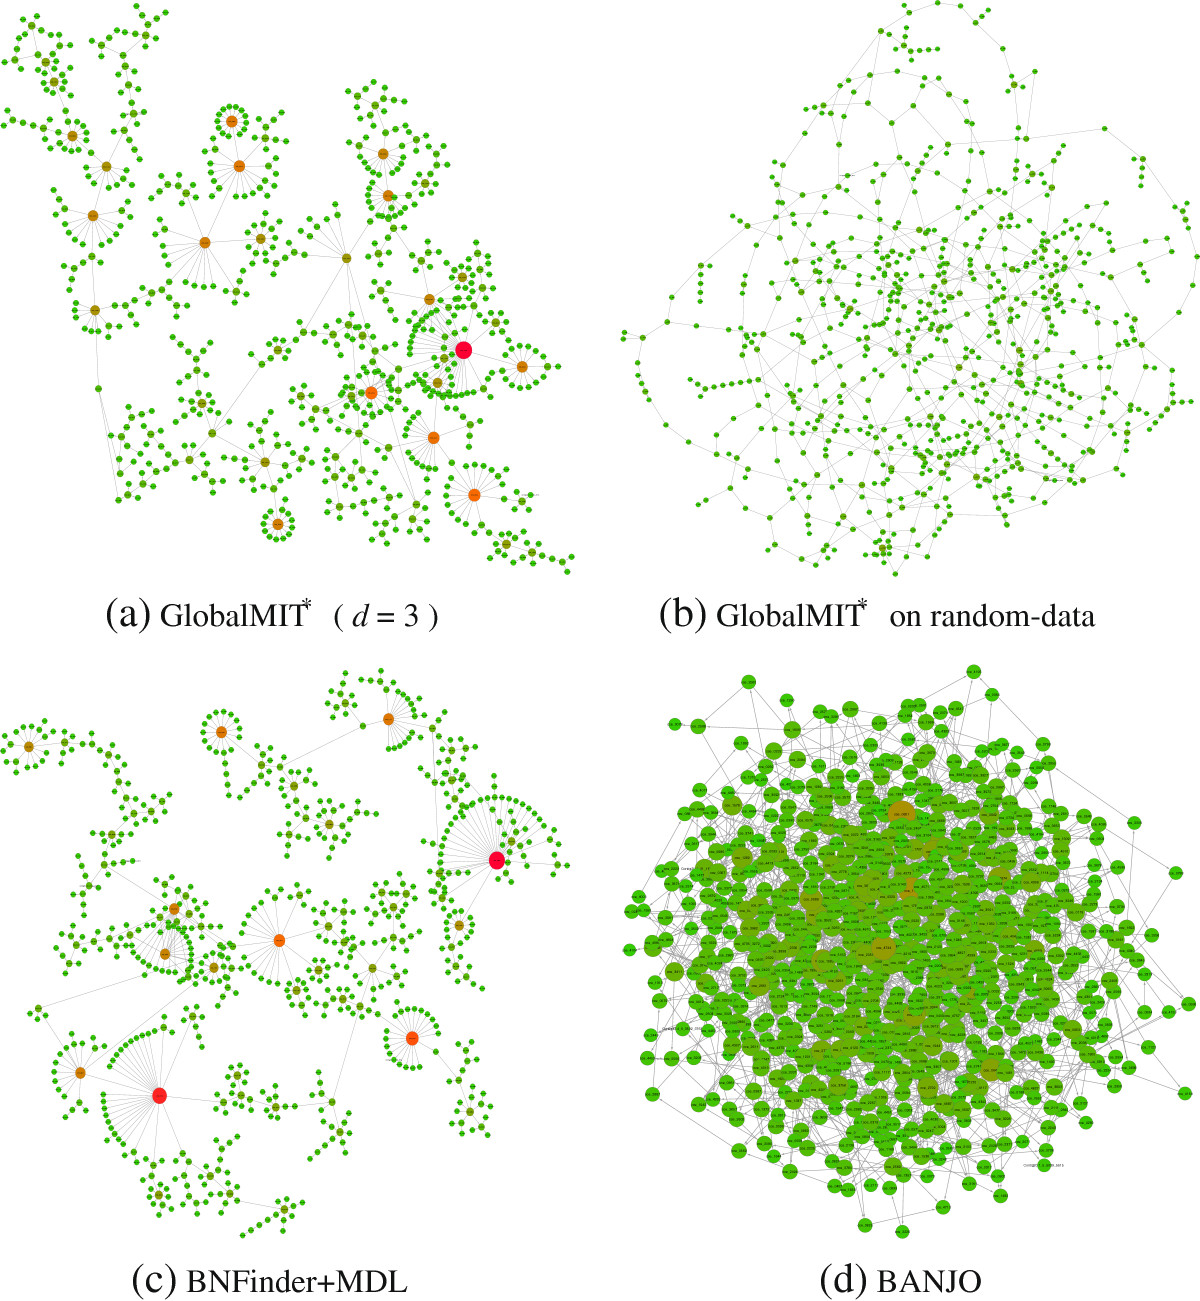 https://static-content.springer.com/image/art%3A10.1186%2F1471-2105-13-131/MediaObjects/12859_2011_Article_5308_Fig6_HTML.jpg